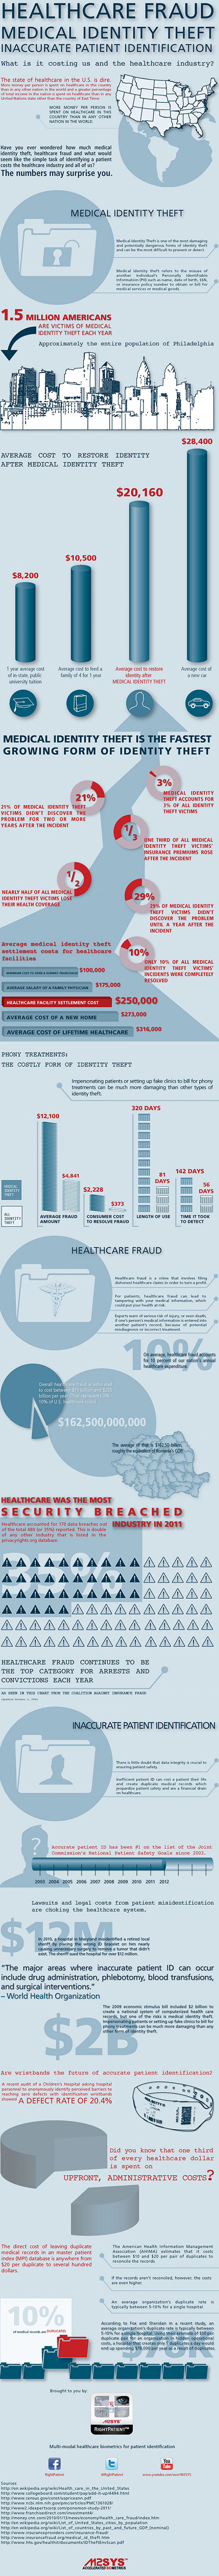 Healthcare Fraud and Medical Identity Theft